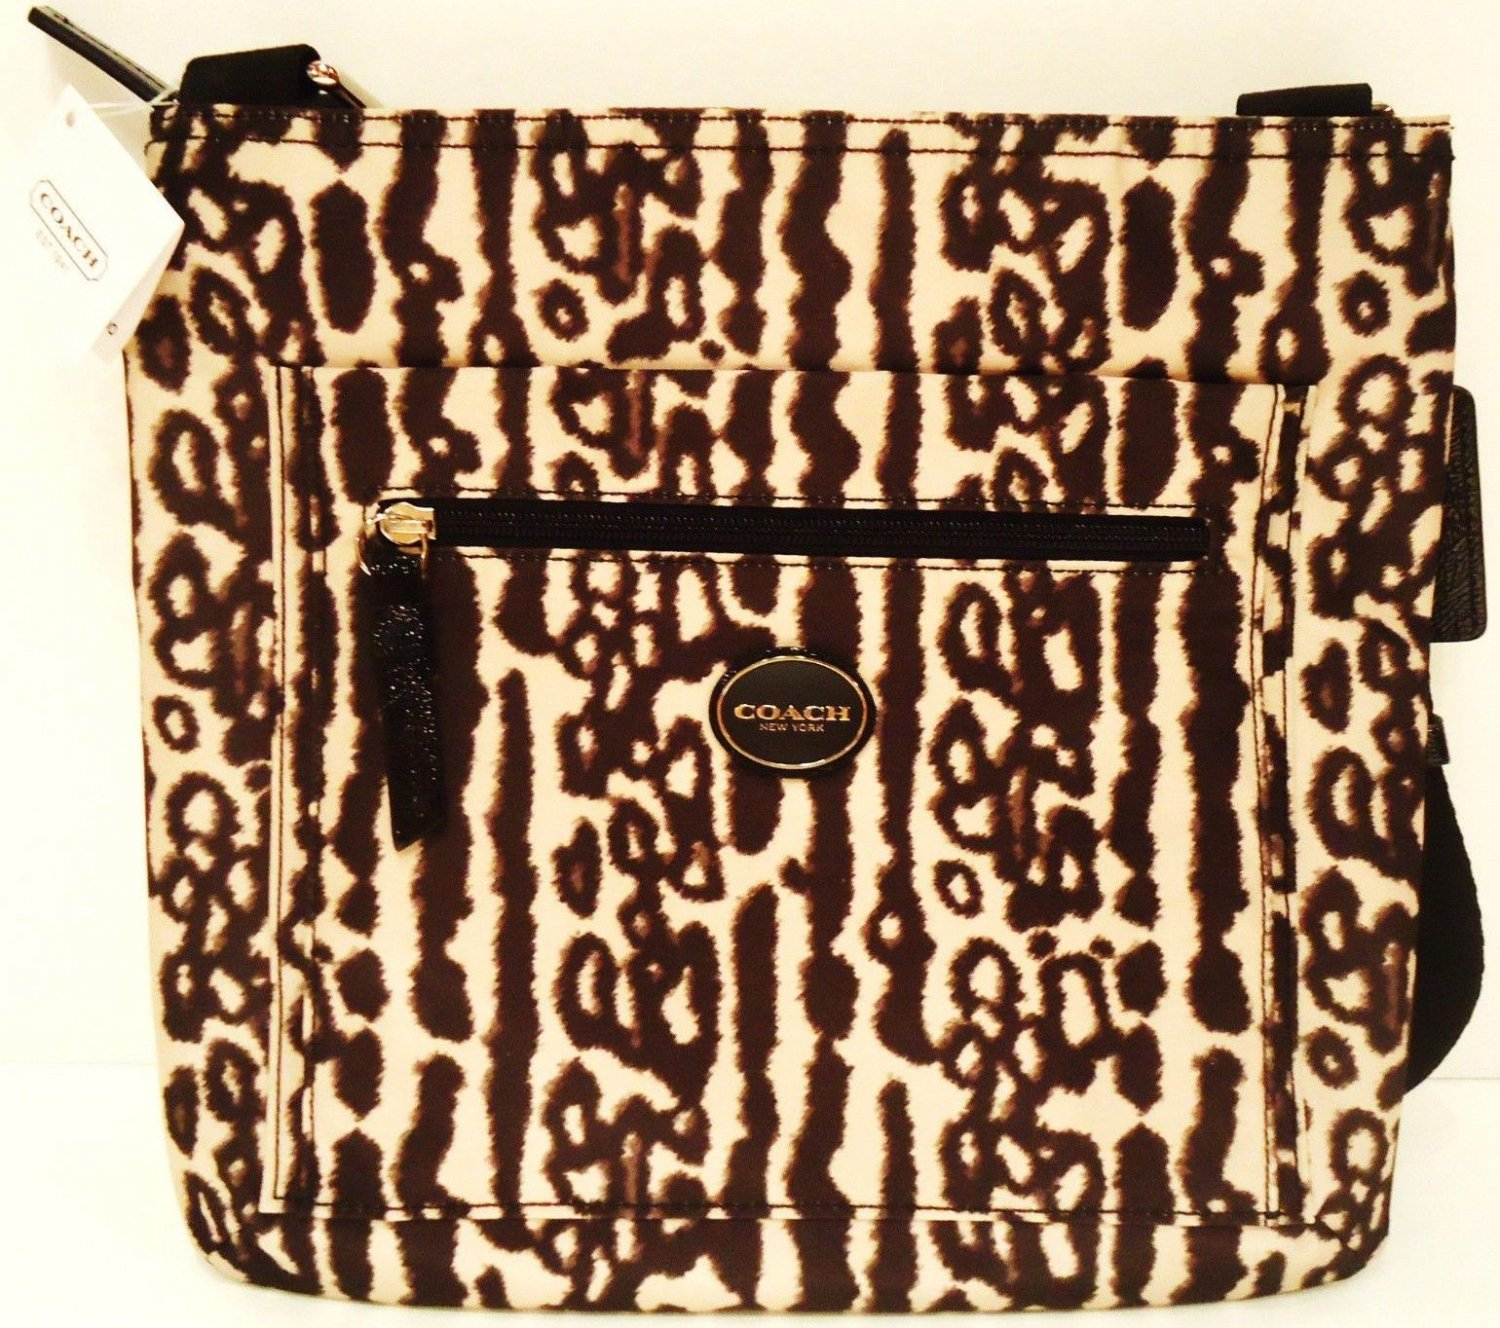 COACH - ANIMAL - PRINT - OCELOT - BLACK - FILE - BAG - PURSE - LEOPARD - NEW